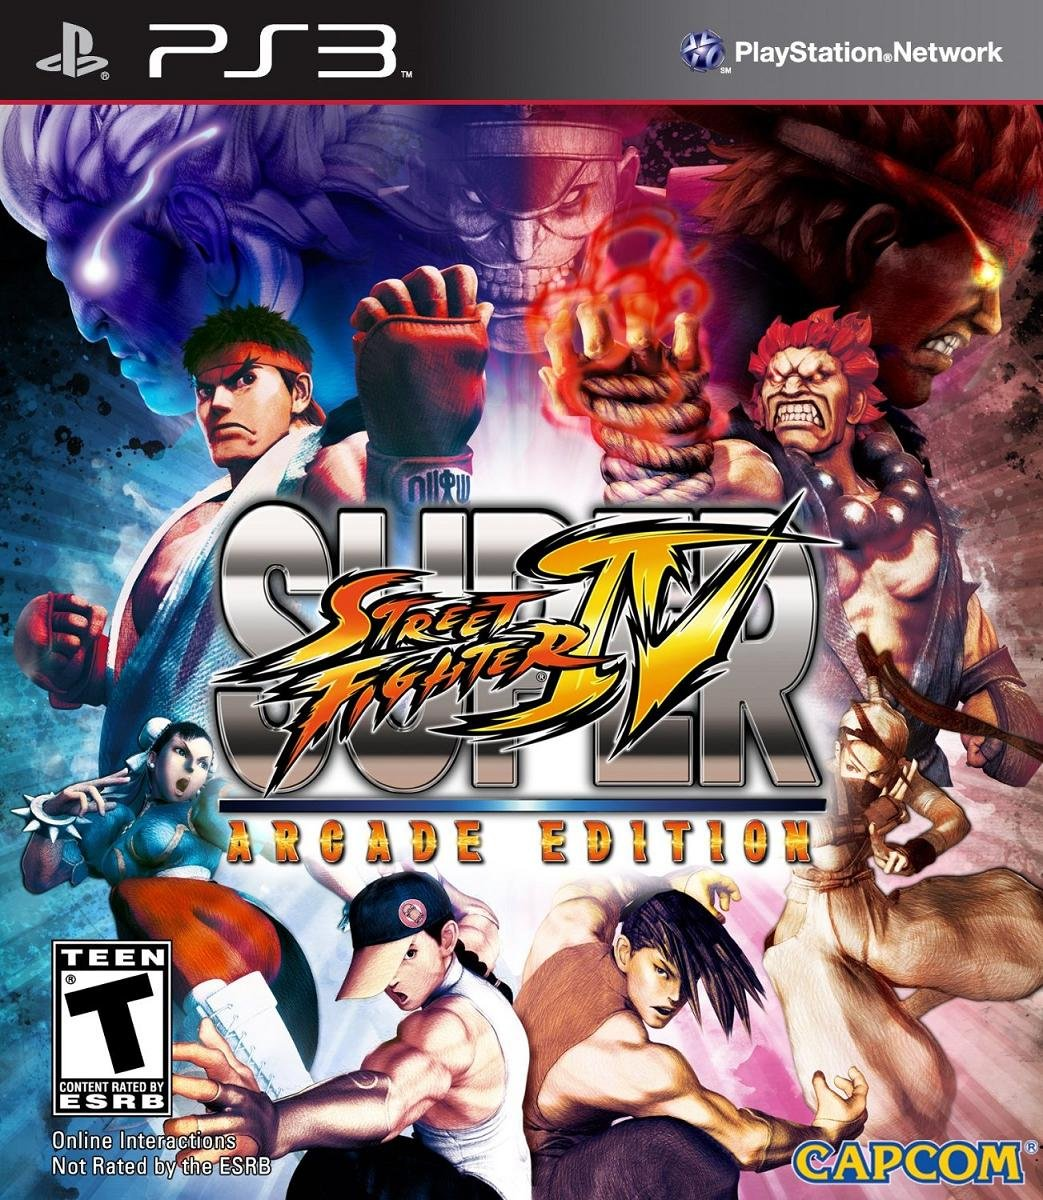 Super Street Max 50% OFF Fighter IV Arcade Edition Industry No. 1 - PS3